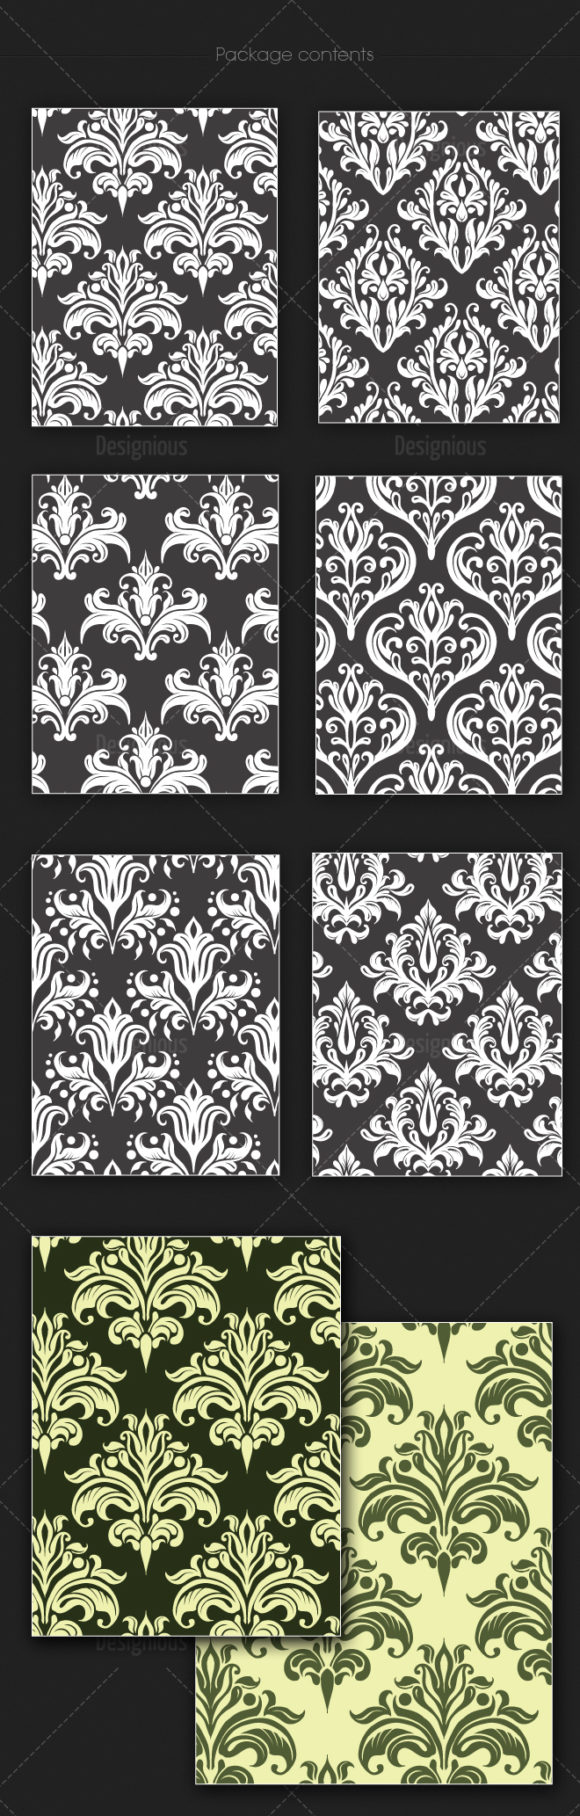 Seamless Patterns Vector Pack 133 6